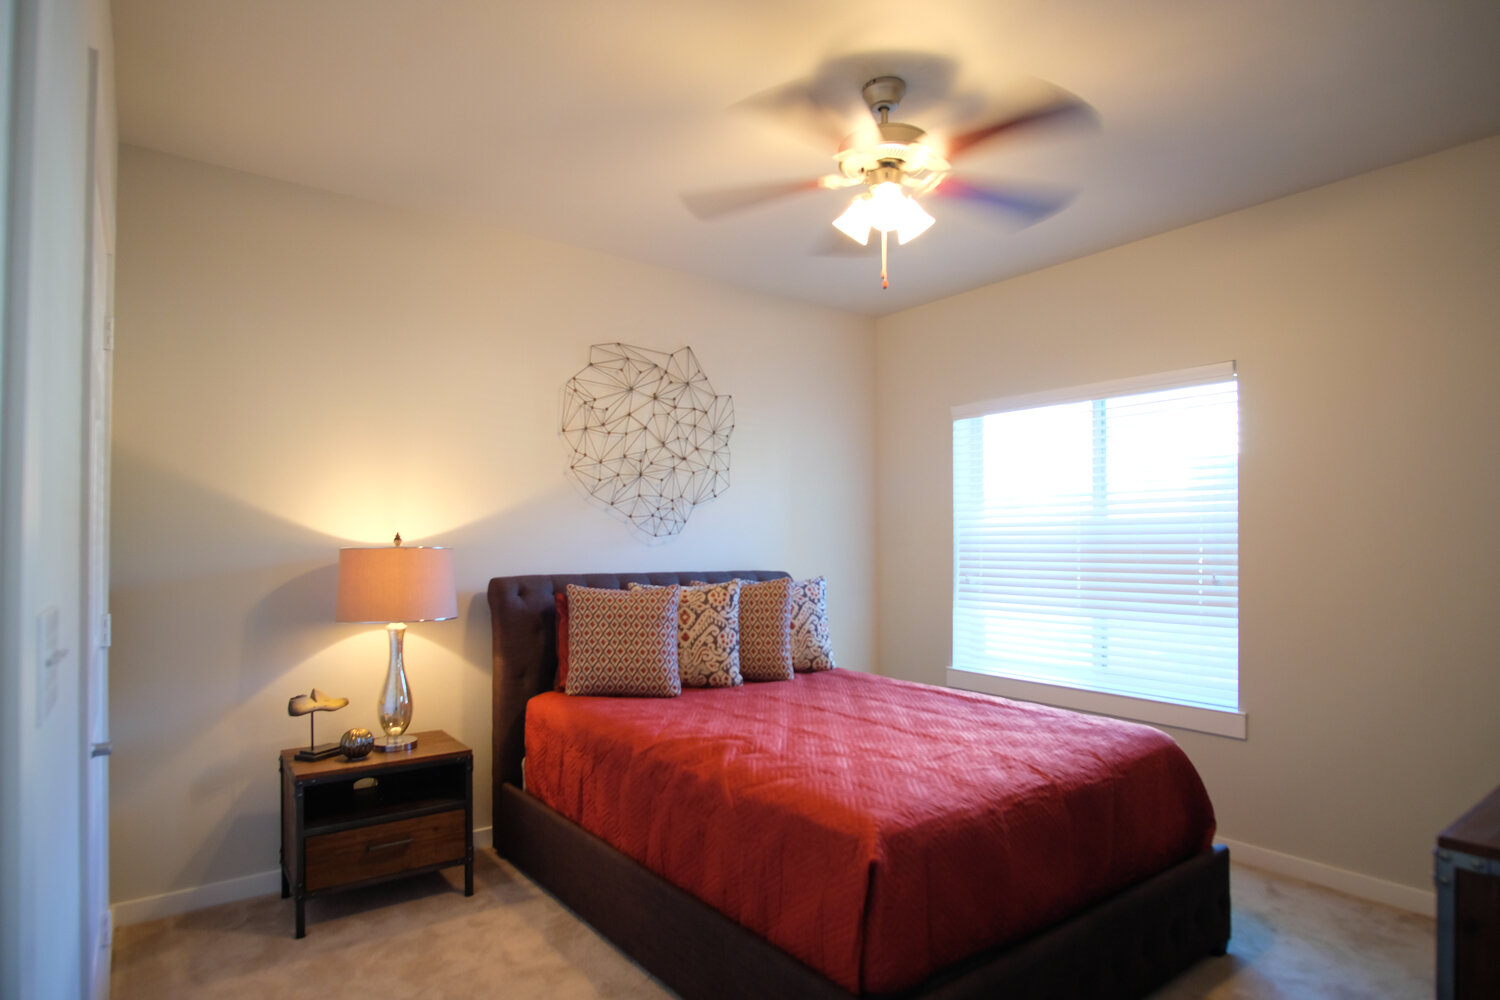 Ceiling Fans at Woodcreek Apartments in Woodcreek, Texas